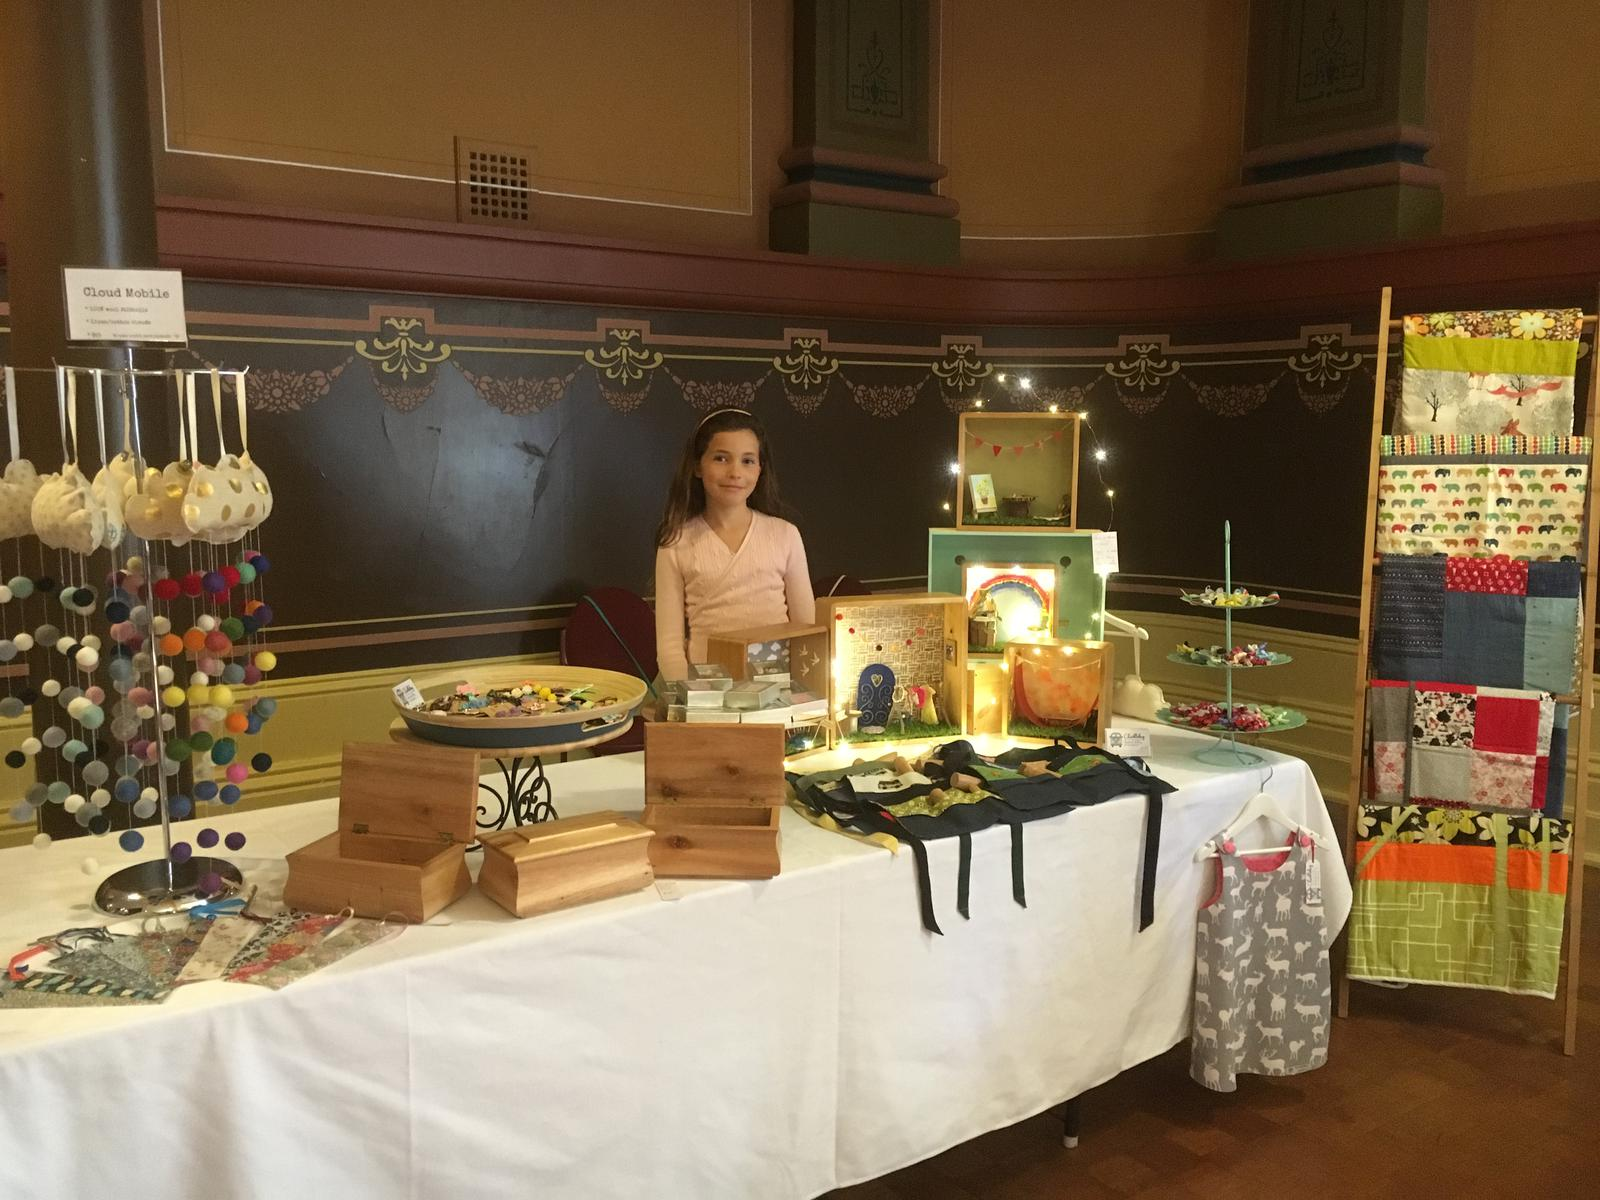 Market Day at the Majestic Fremantle Town Hall